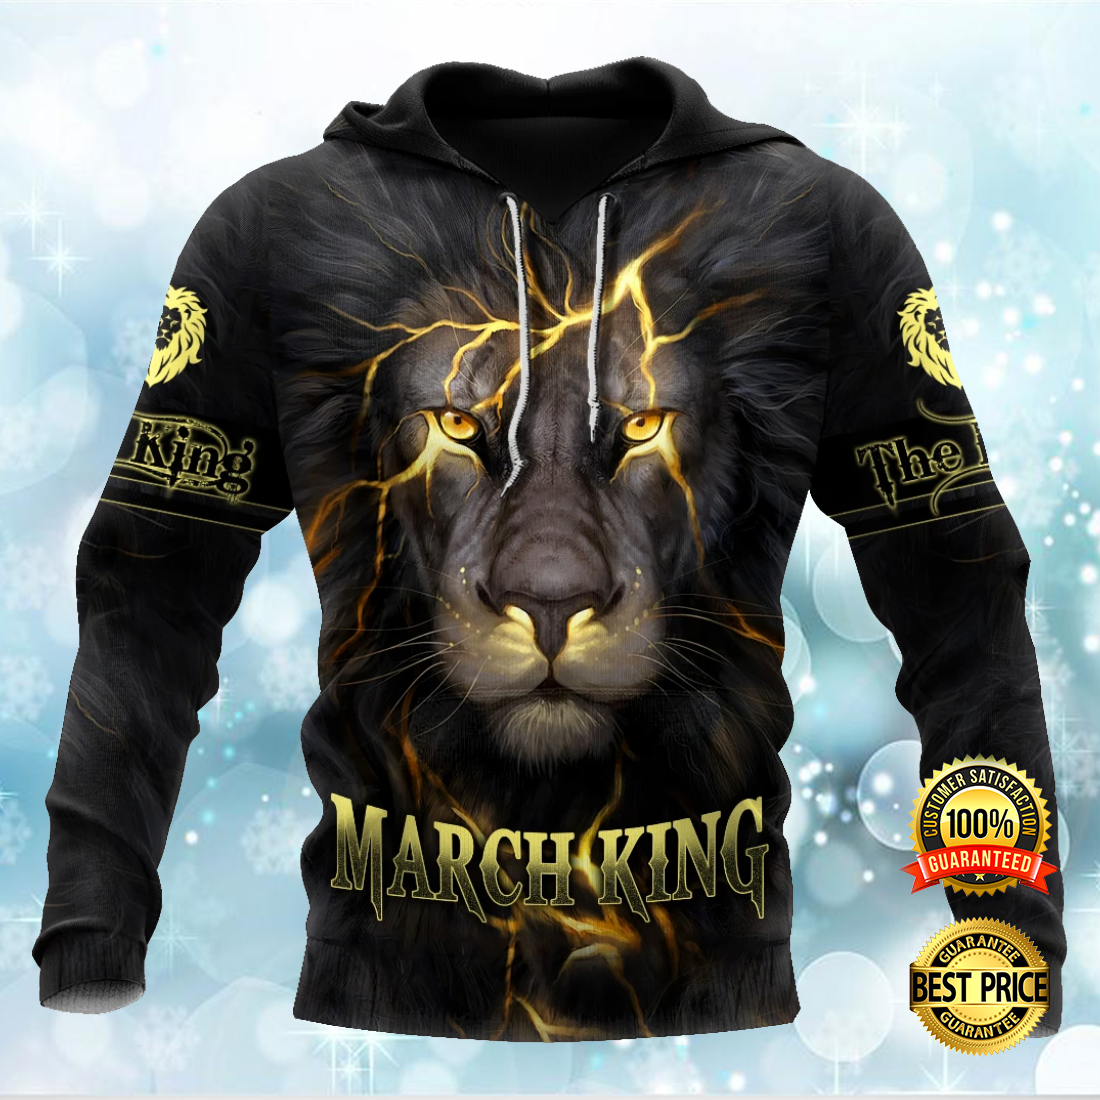 MARCH LION KING ALL OVER PRINTED 3D HOODIE 7